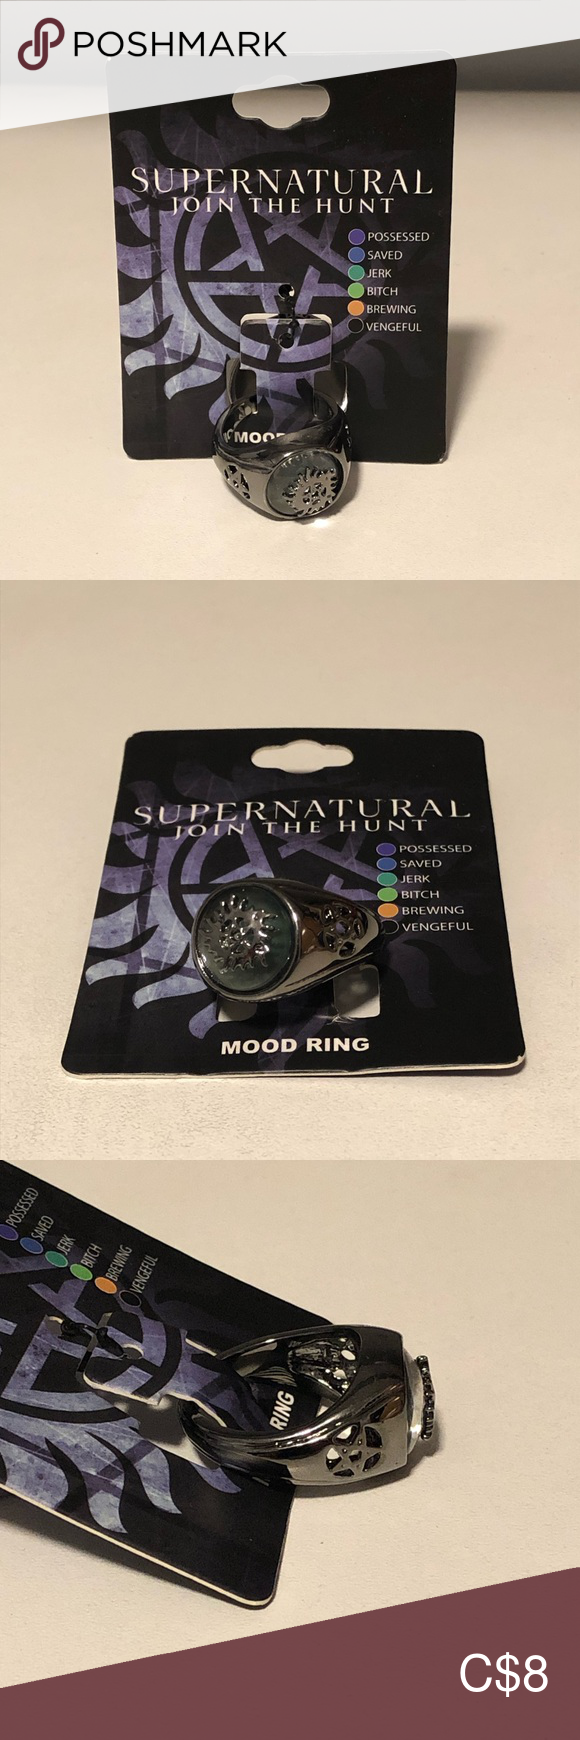 Supernatural Mood Ring NWT in 2020 (With images) Mood